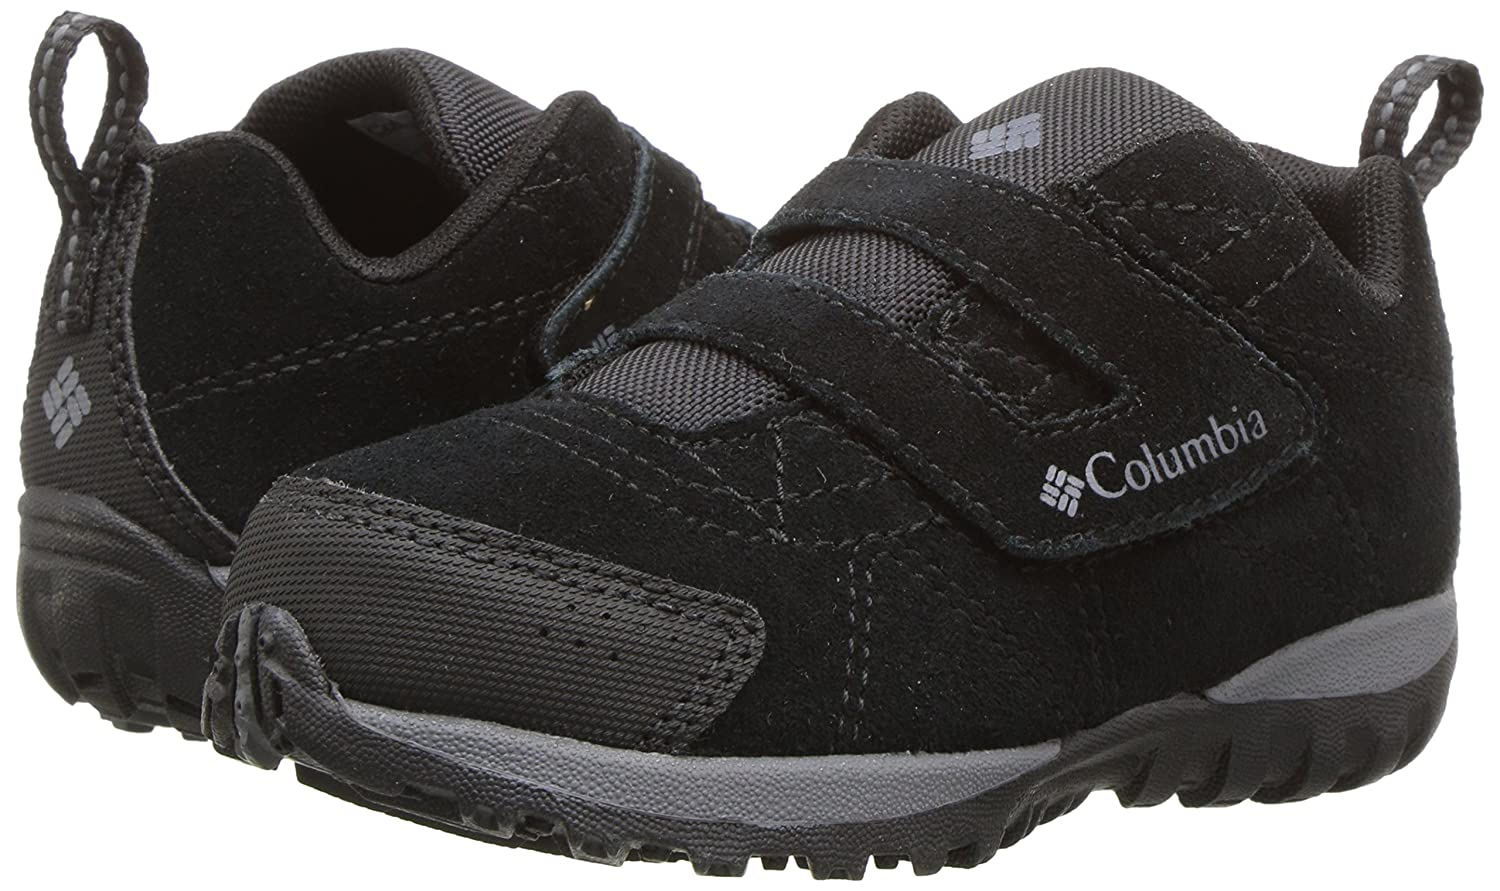 Columbia Childrens Hiking and Walking Shoes CHILDRENS VENTURE